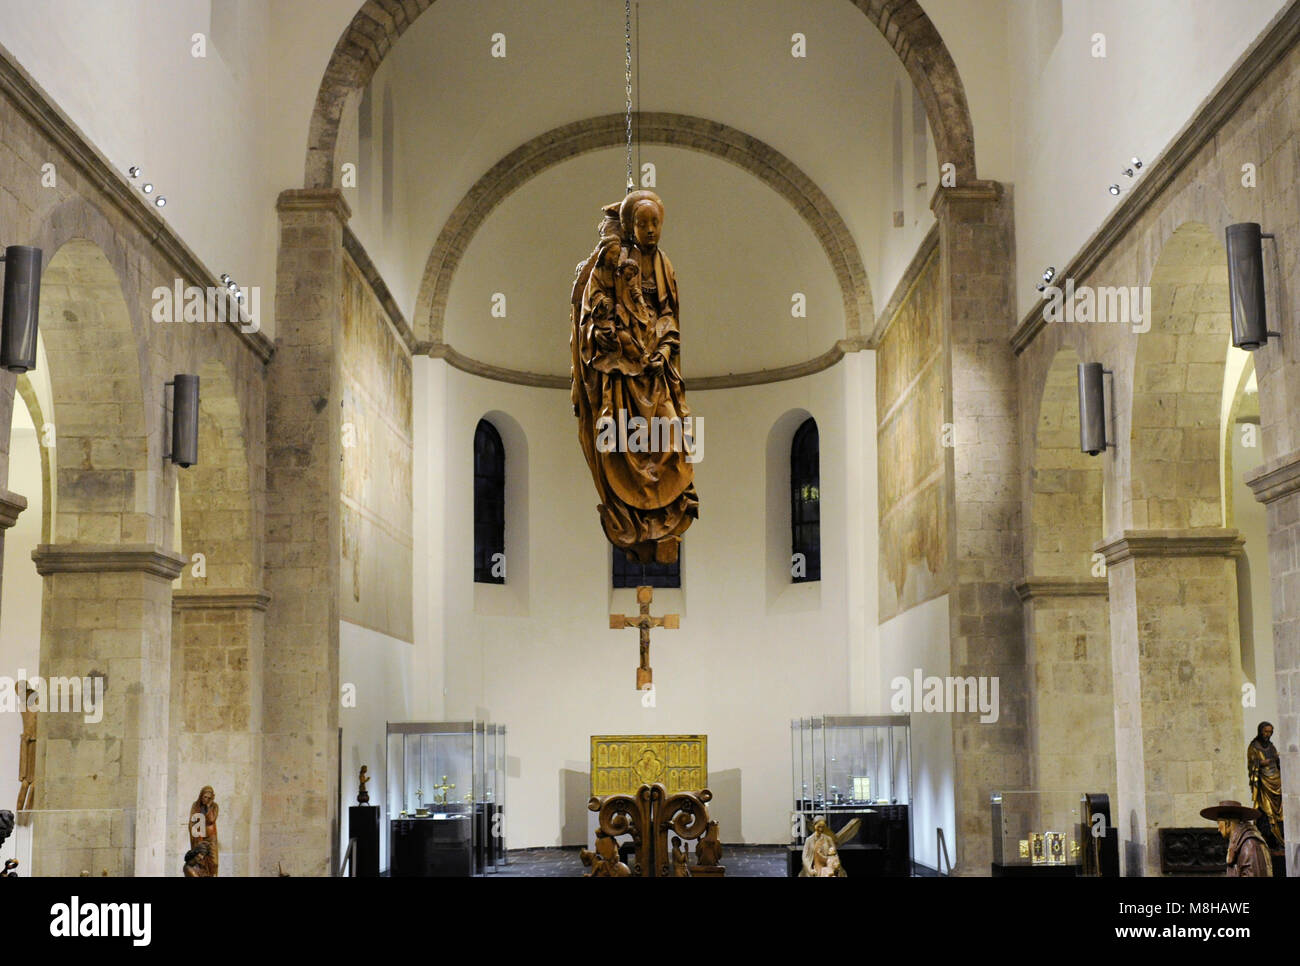 Schnütgen Museum. Interior view of the old Romanesque church where the museum is located. Cologne, Germany. - Stock Image